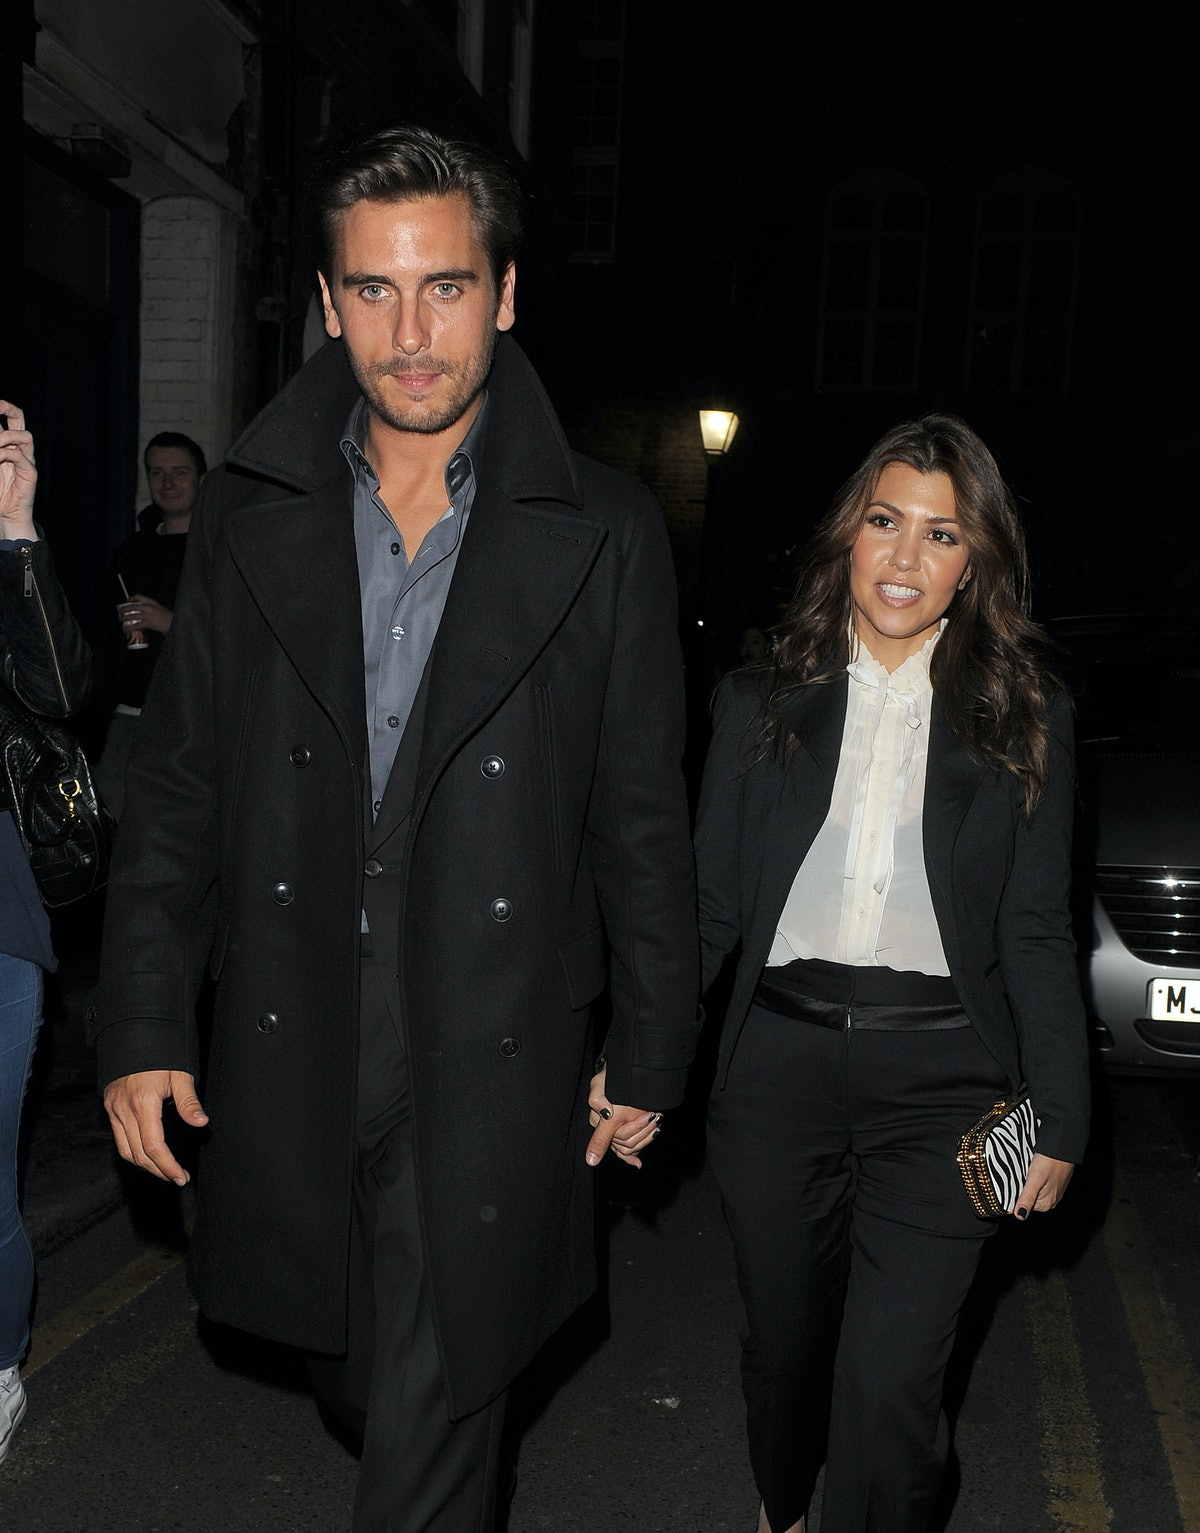 Scott Disick and Kourtney Kardashian step out hand in hand.